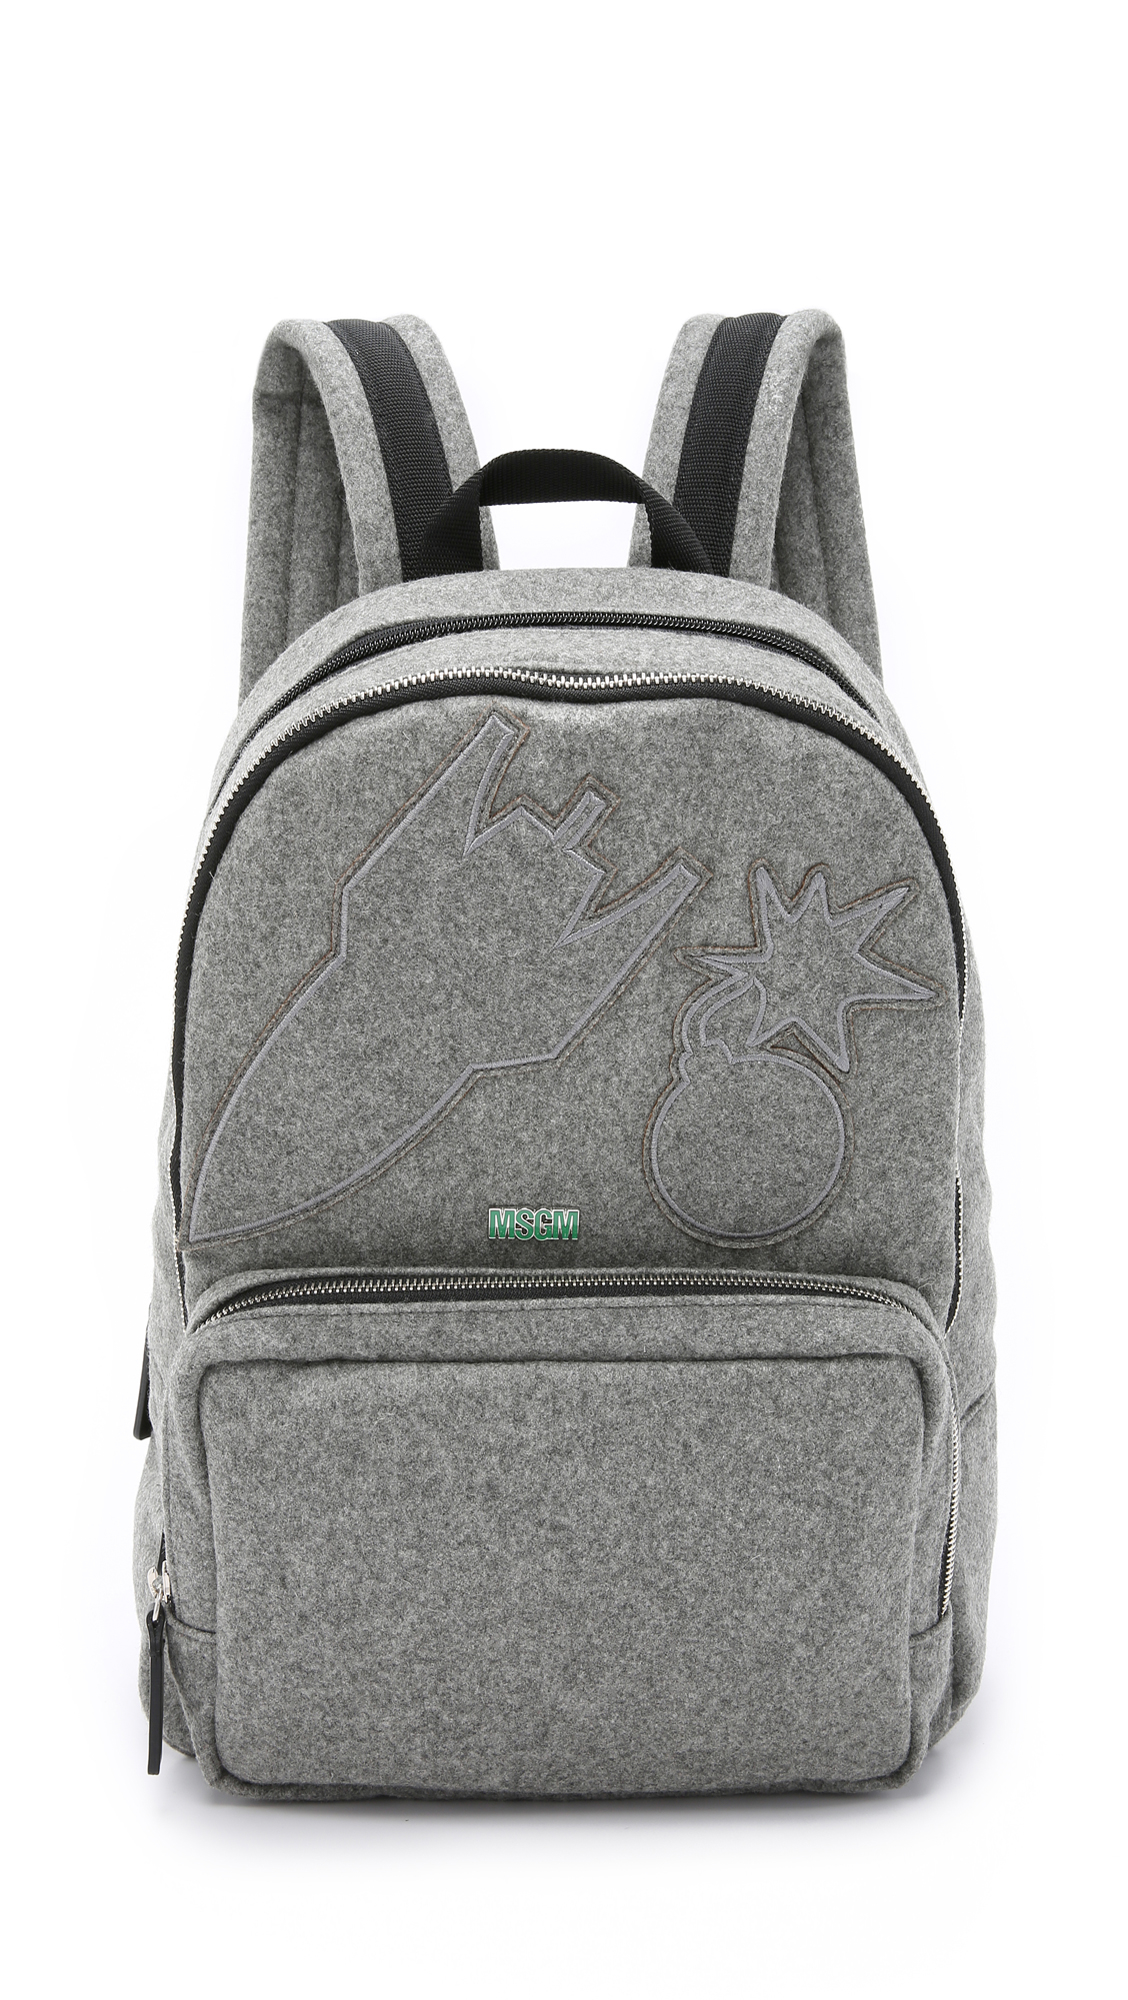 Lyst Msgm Backpack In Gray For Men